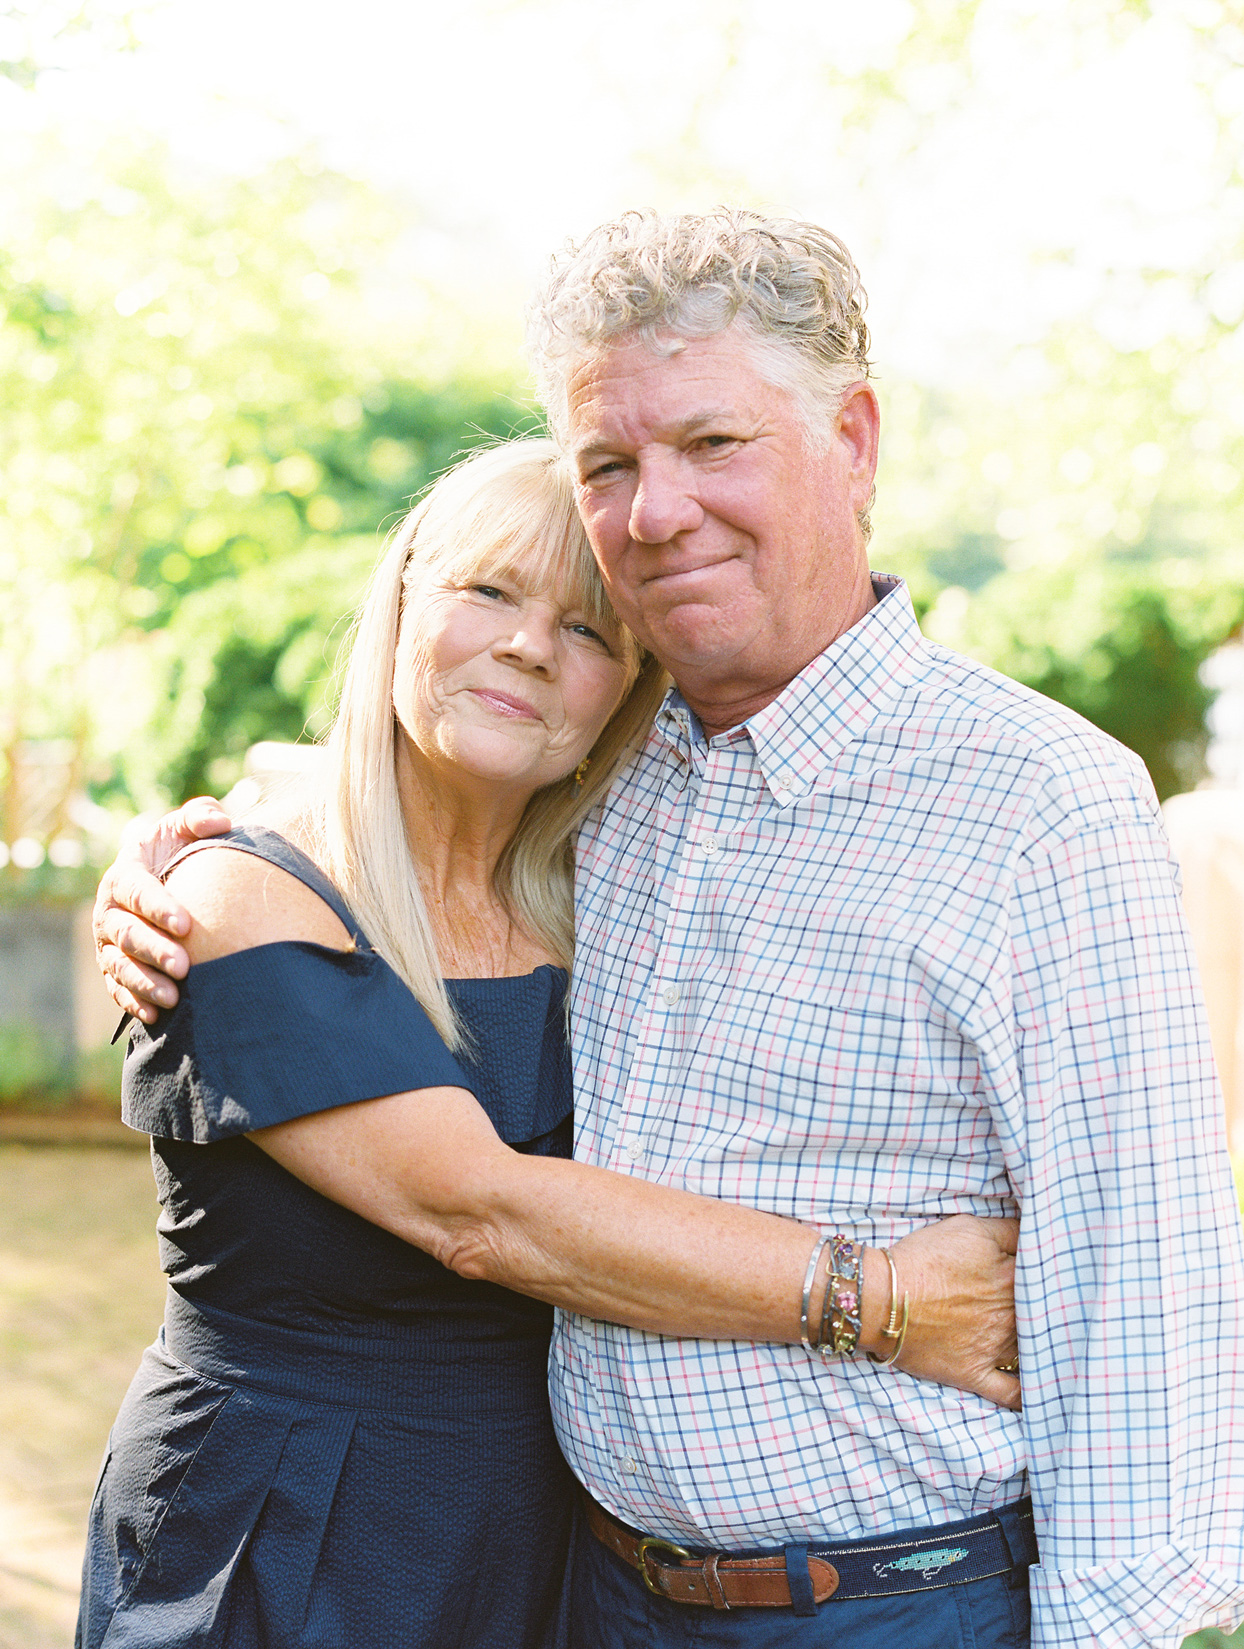 couple share side hug during anniversary party